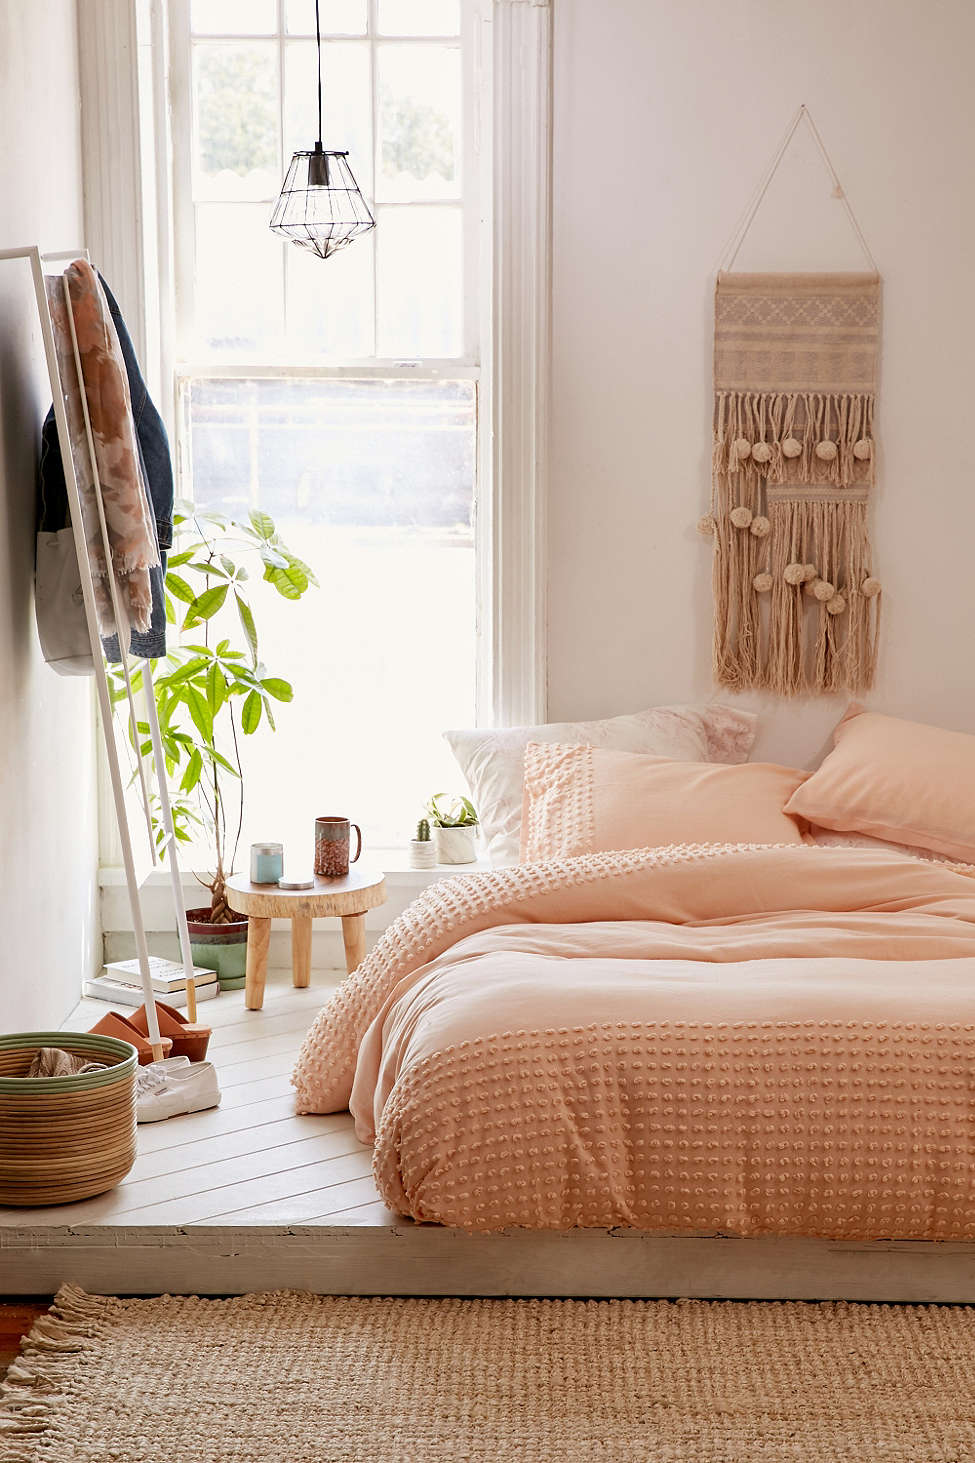 5 dreamy college campus bedrooms daily dream decor for Peach bedroom decor